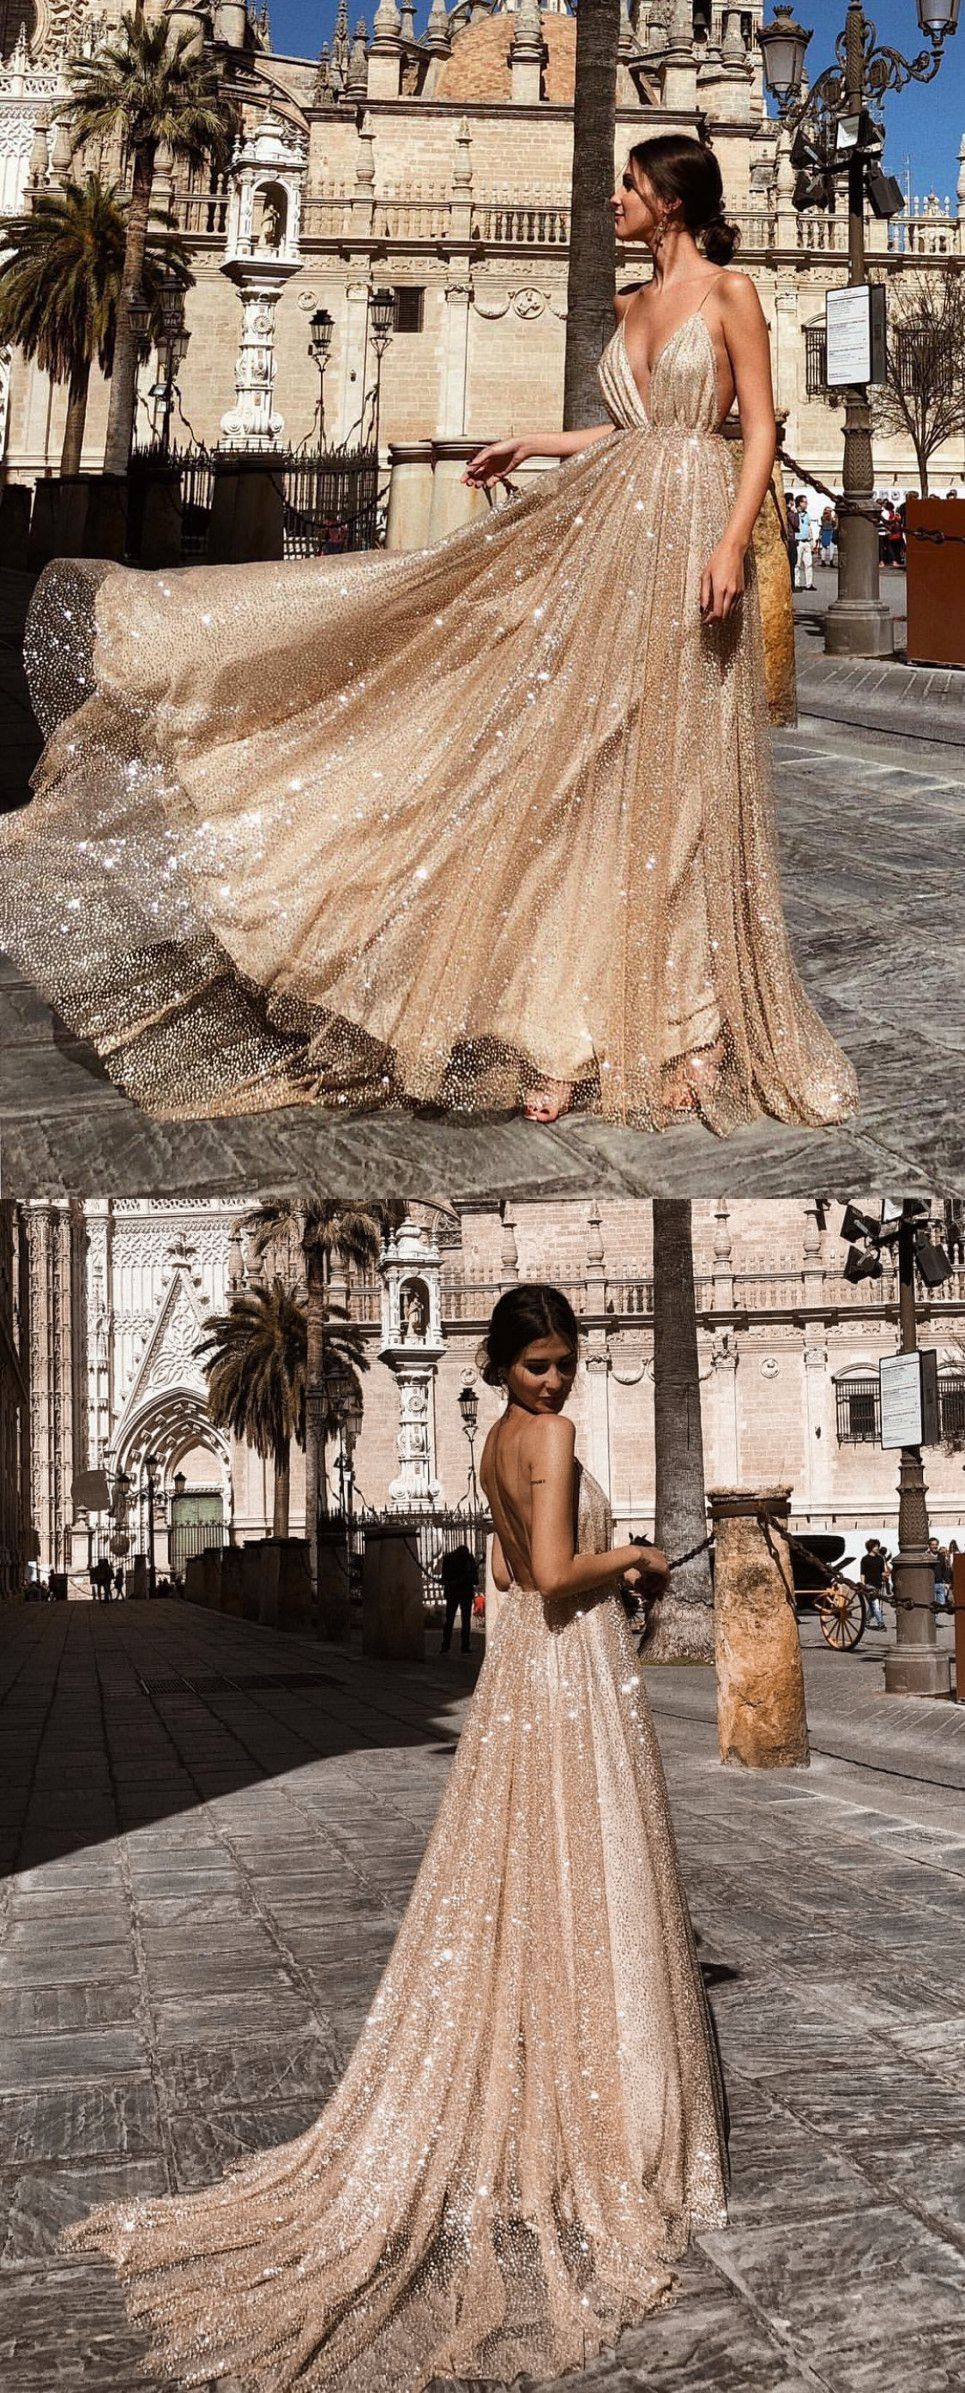 A Line V Neck Backless Champagne Long Sparkling Prom Dresses Champagne Prom Gown Formal Dresses Sparkly Prom Dresses Sparkle Prom Dress Straps Prom Dresses [ 2393 x 965 Pixel ]